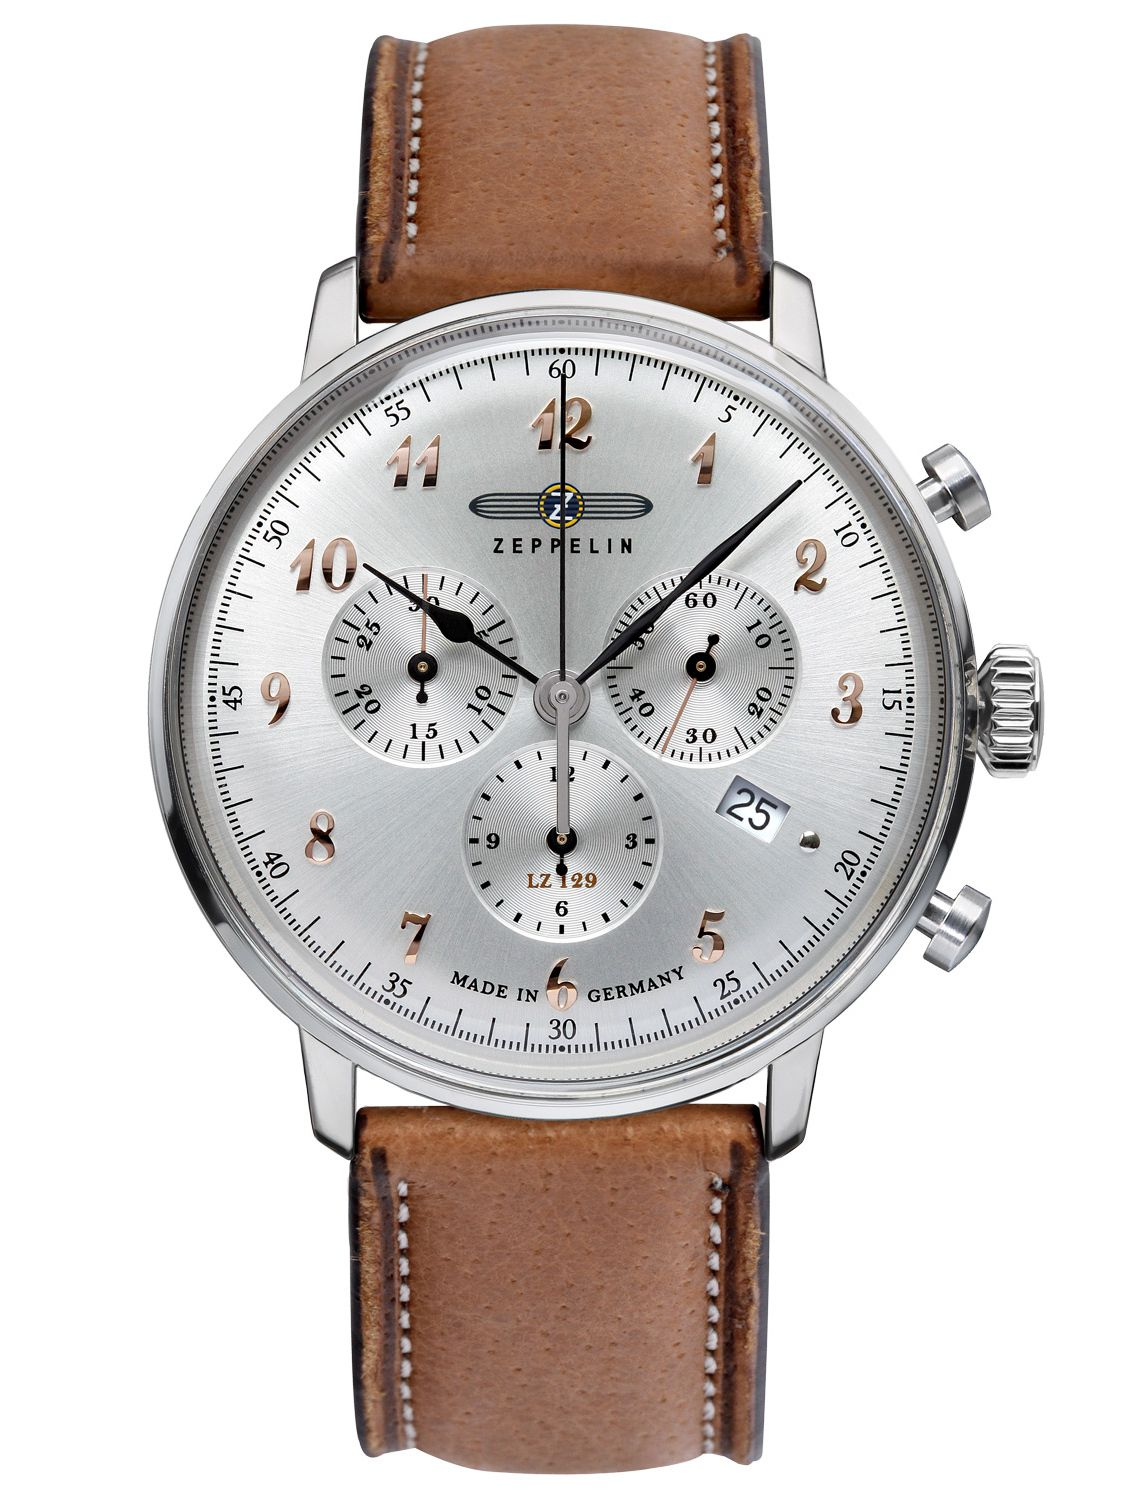 Zeppelin Mens Watch Chronograph LZ129 Hindenburg Ed. 1 7088-5